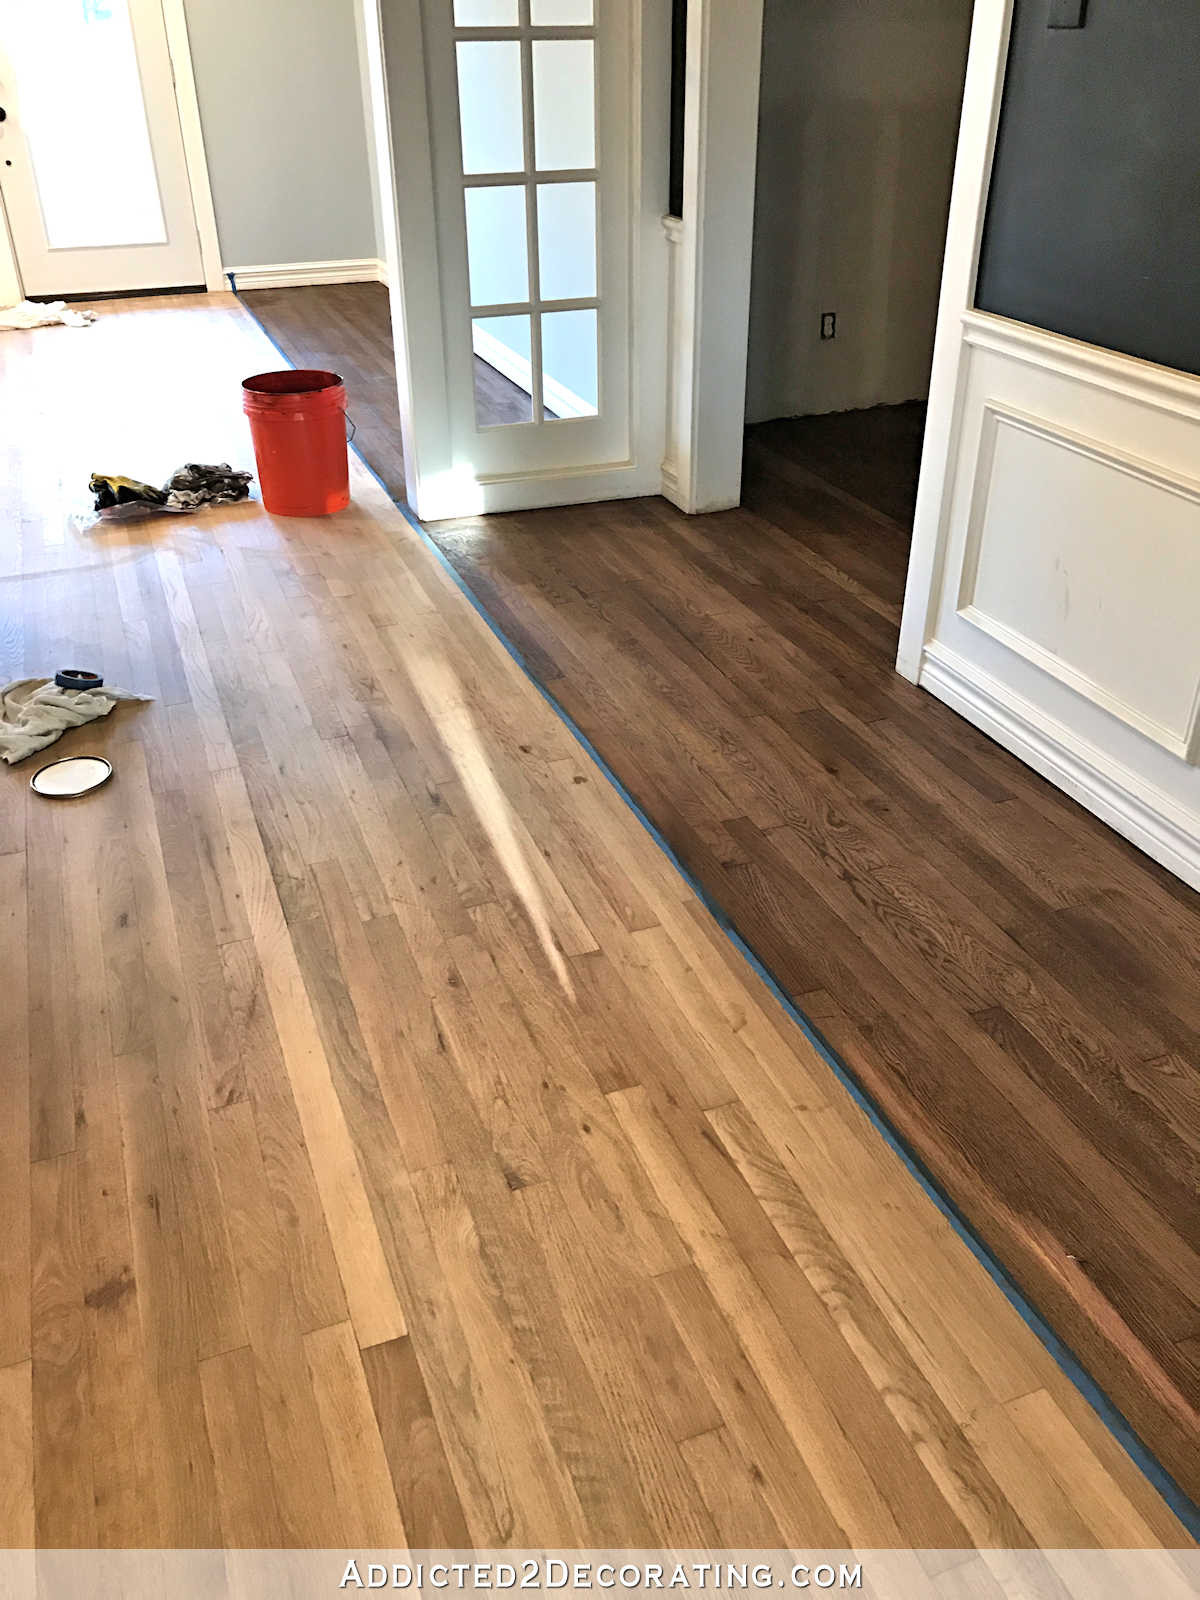 how to refinish hardwood floors with drum sander of adventures in staining my red oak hardwood floors products process regarding staining red oak hardwood floors 6 stain on partial floor in entryway and music room